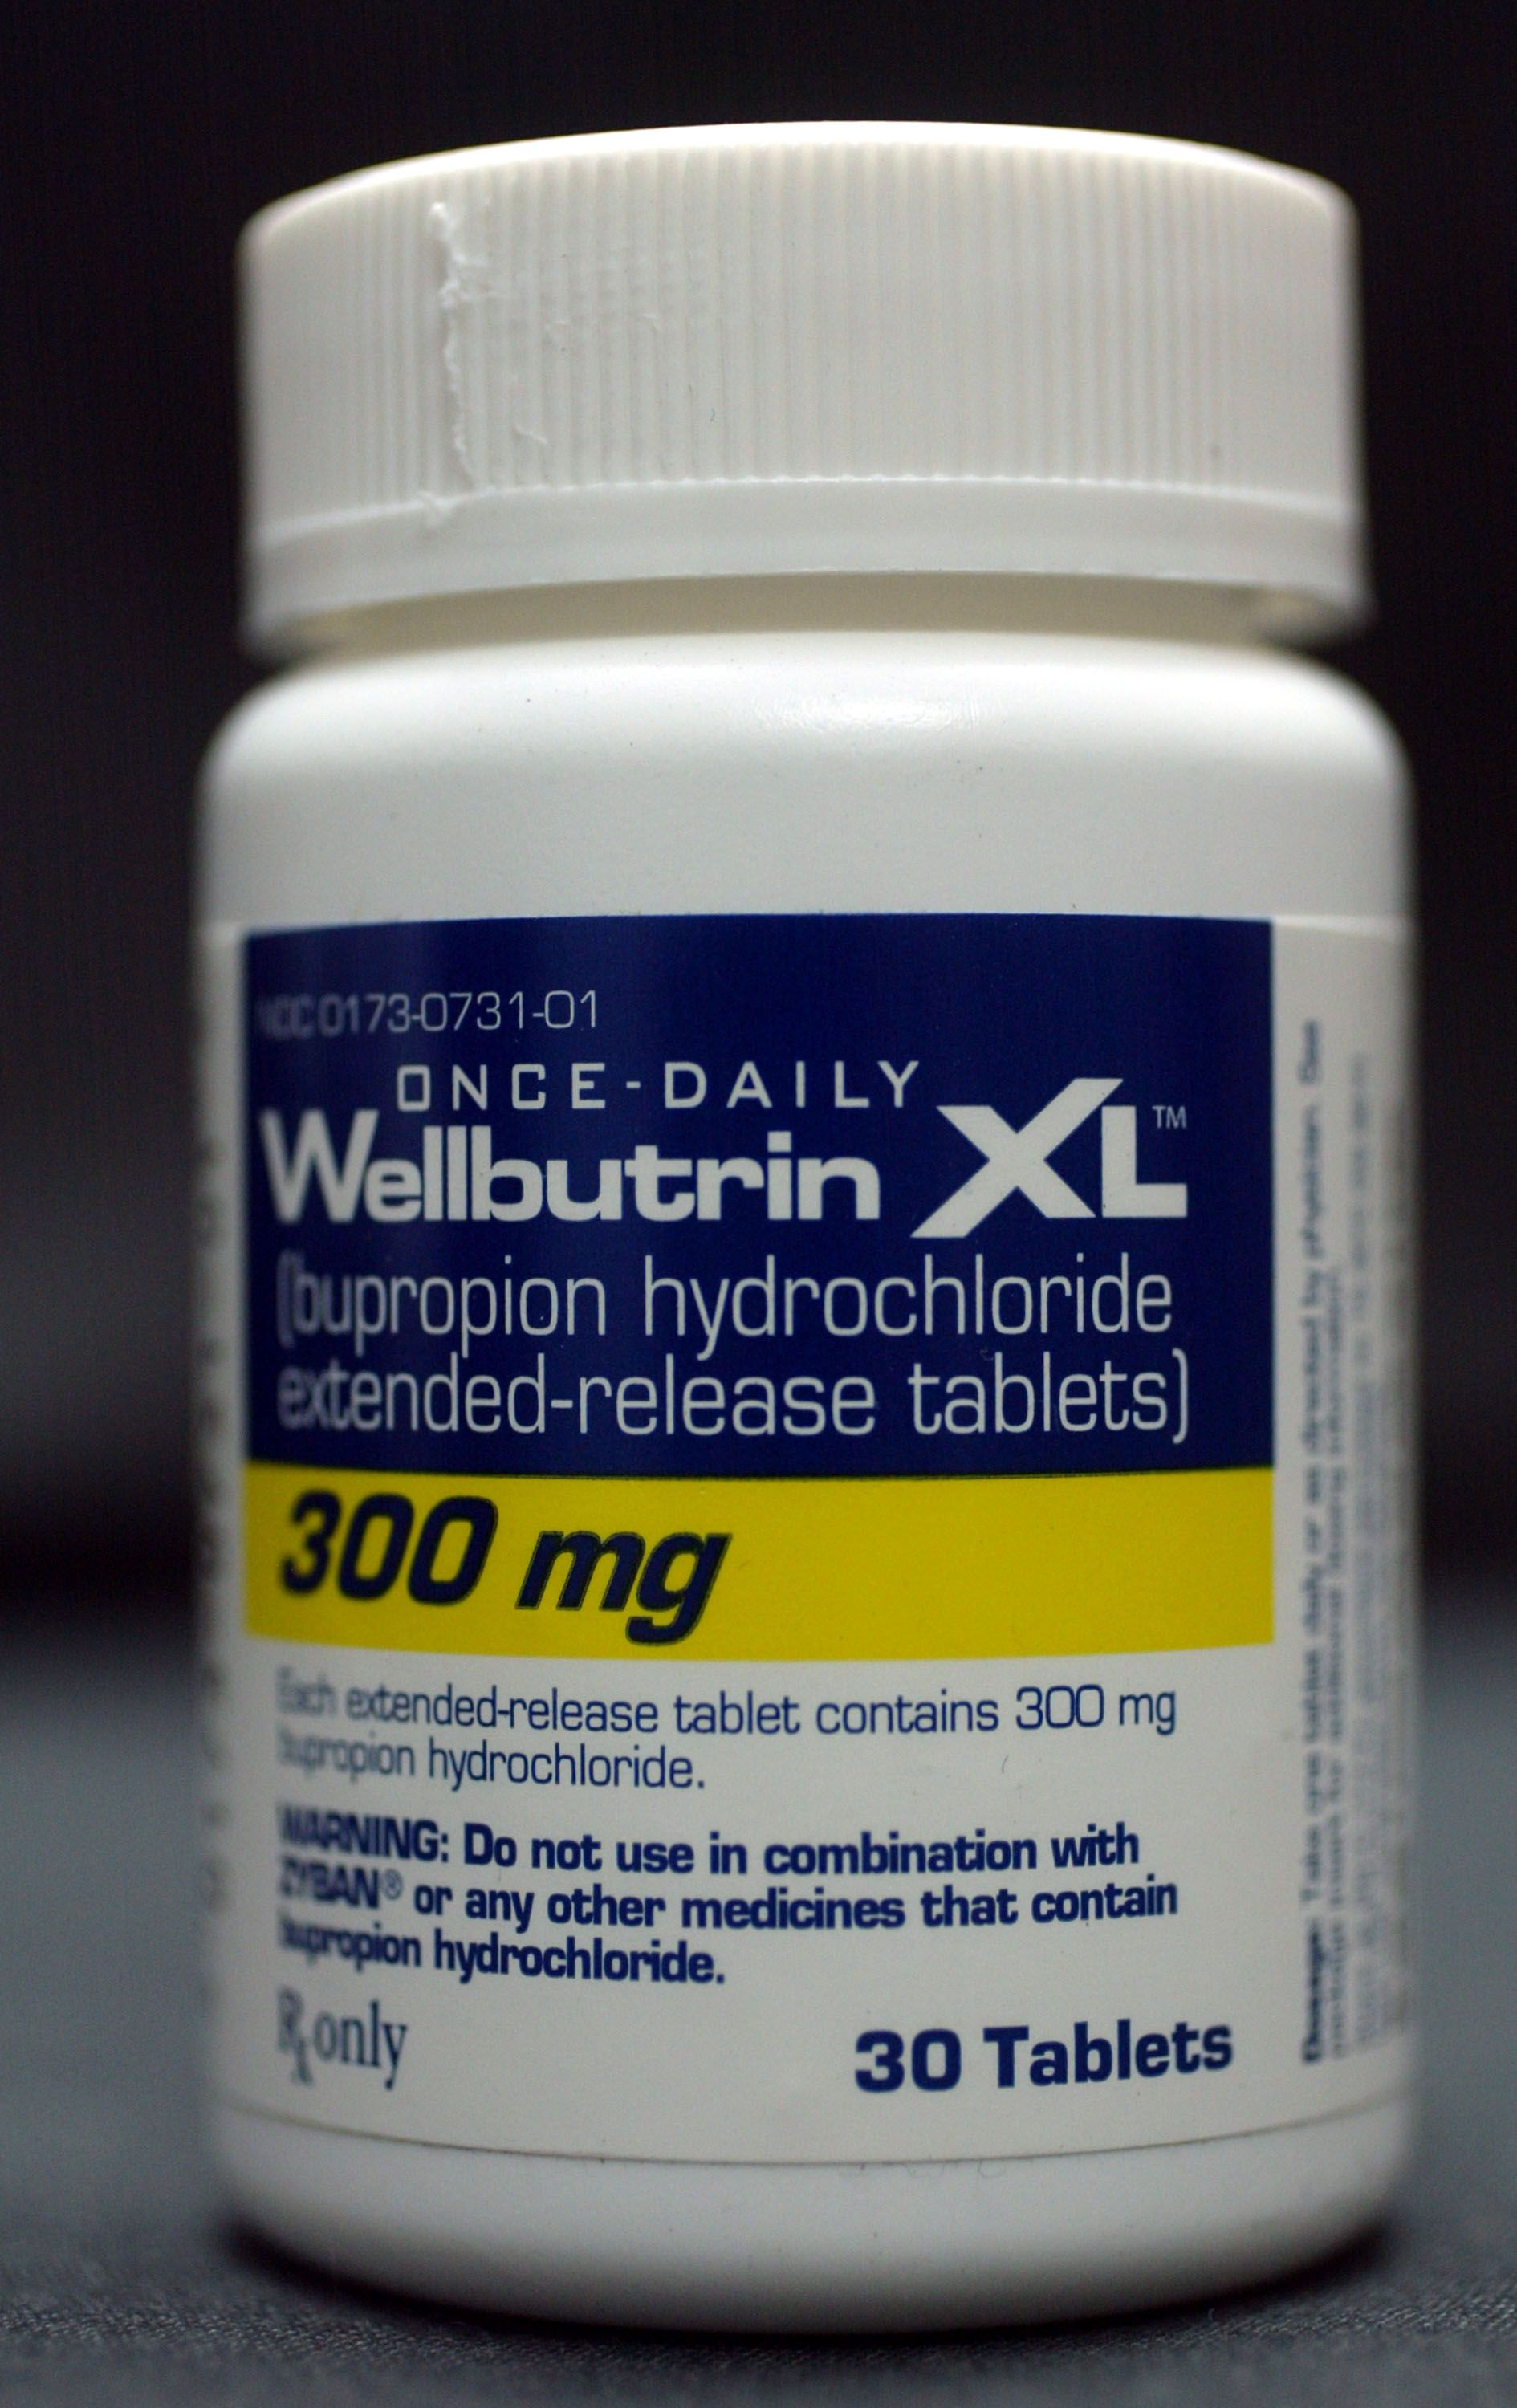 Wellbutrin for Bipolar Disorder: Risks and Benefits